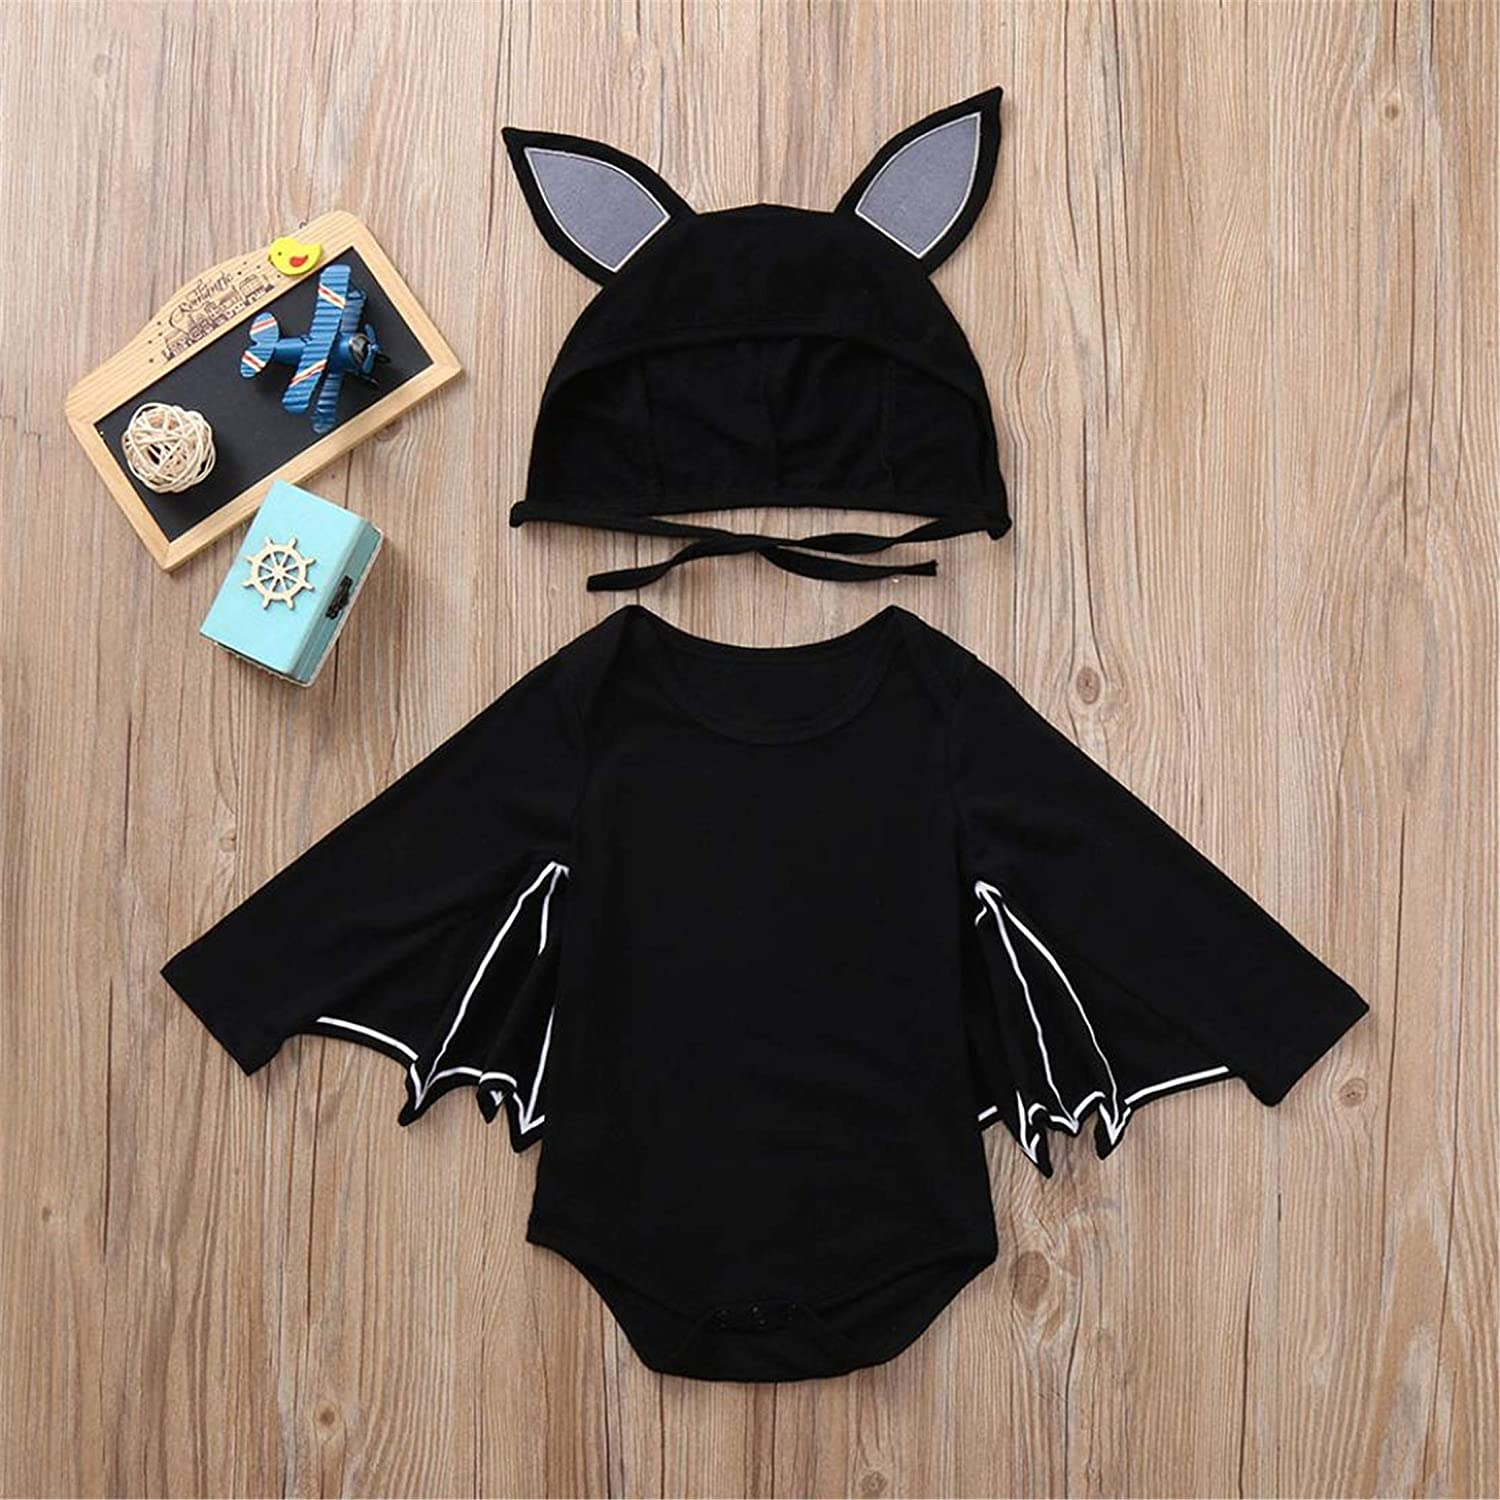 18M-90 happy event Kleinkind Baby M/ädchen Junge Baumwolle Fledermaus Kost/üm Outfits Kleidung Sets Toddler Infant Baby Girl Boy Bat Outfits Clothes Sets